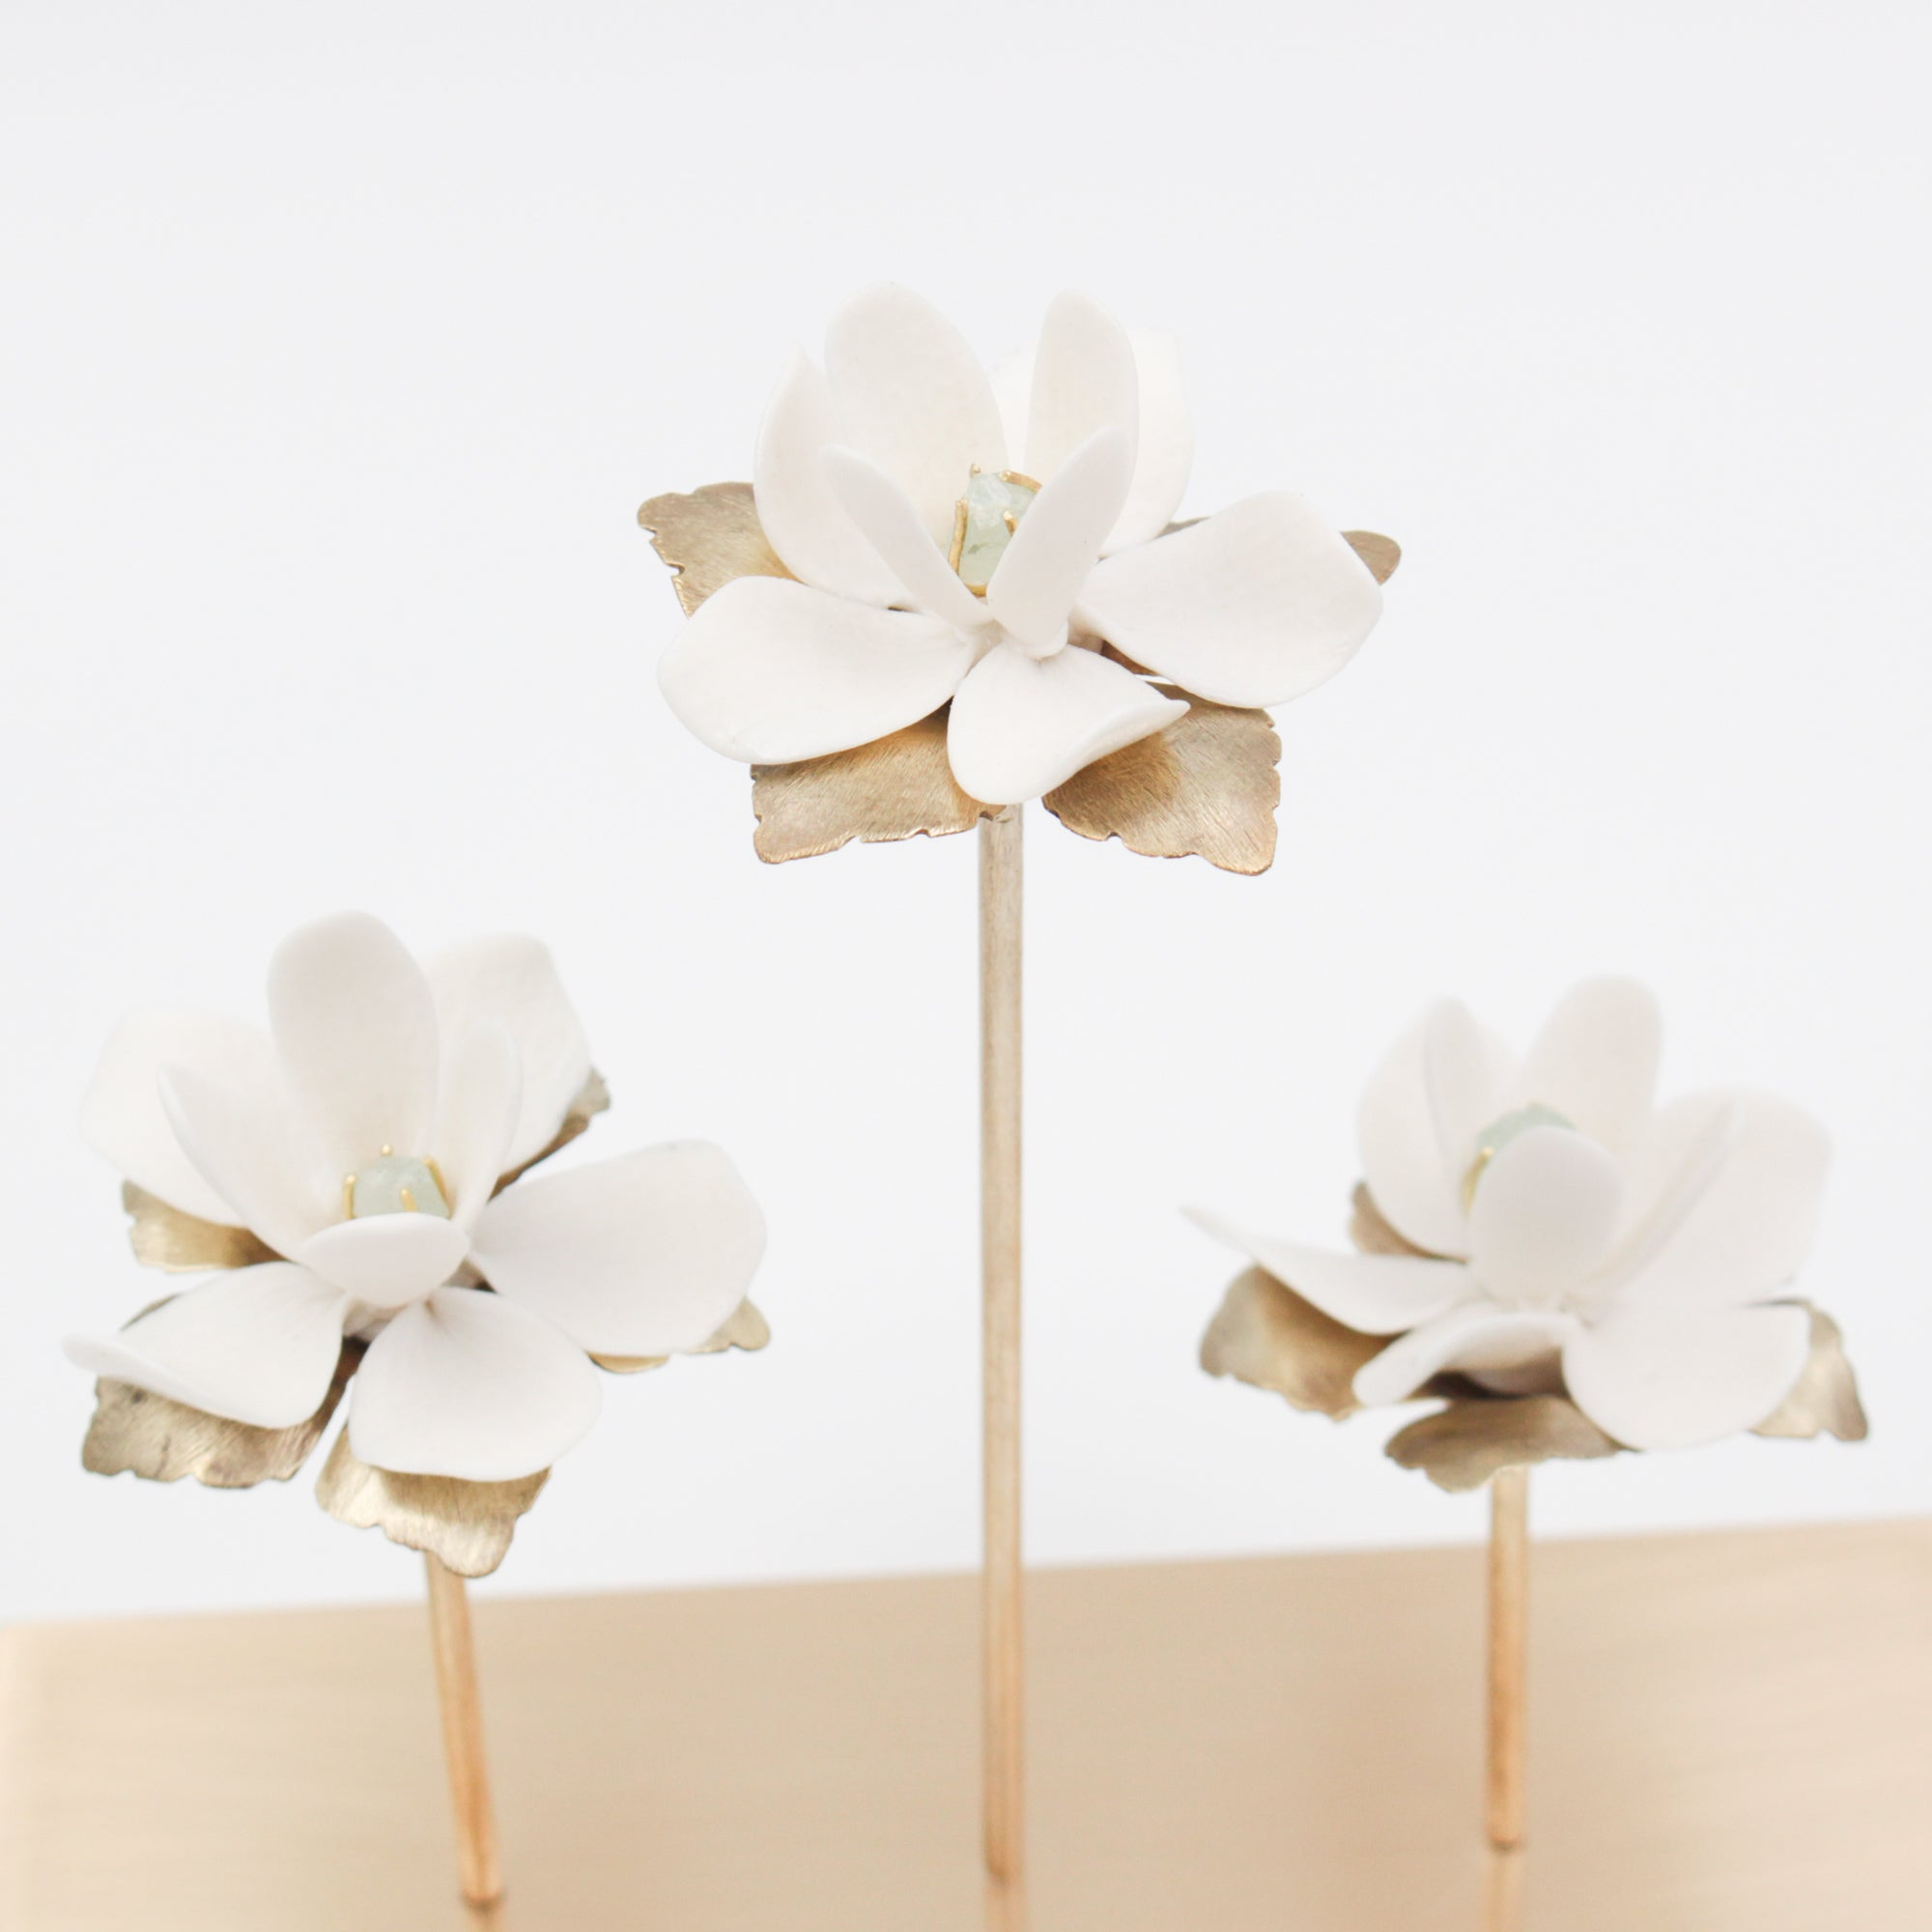 Porcelain and Aquamarine Magnolia Flower for Interior Decoration -Handmade in France by Alain Granell - Home Decoration